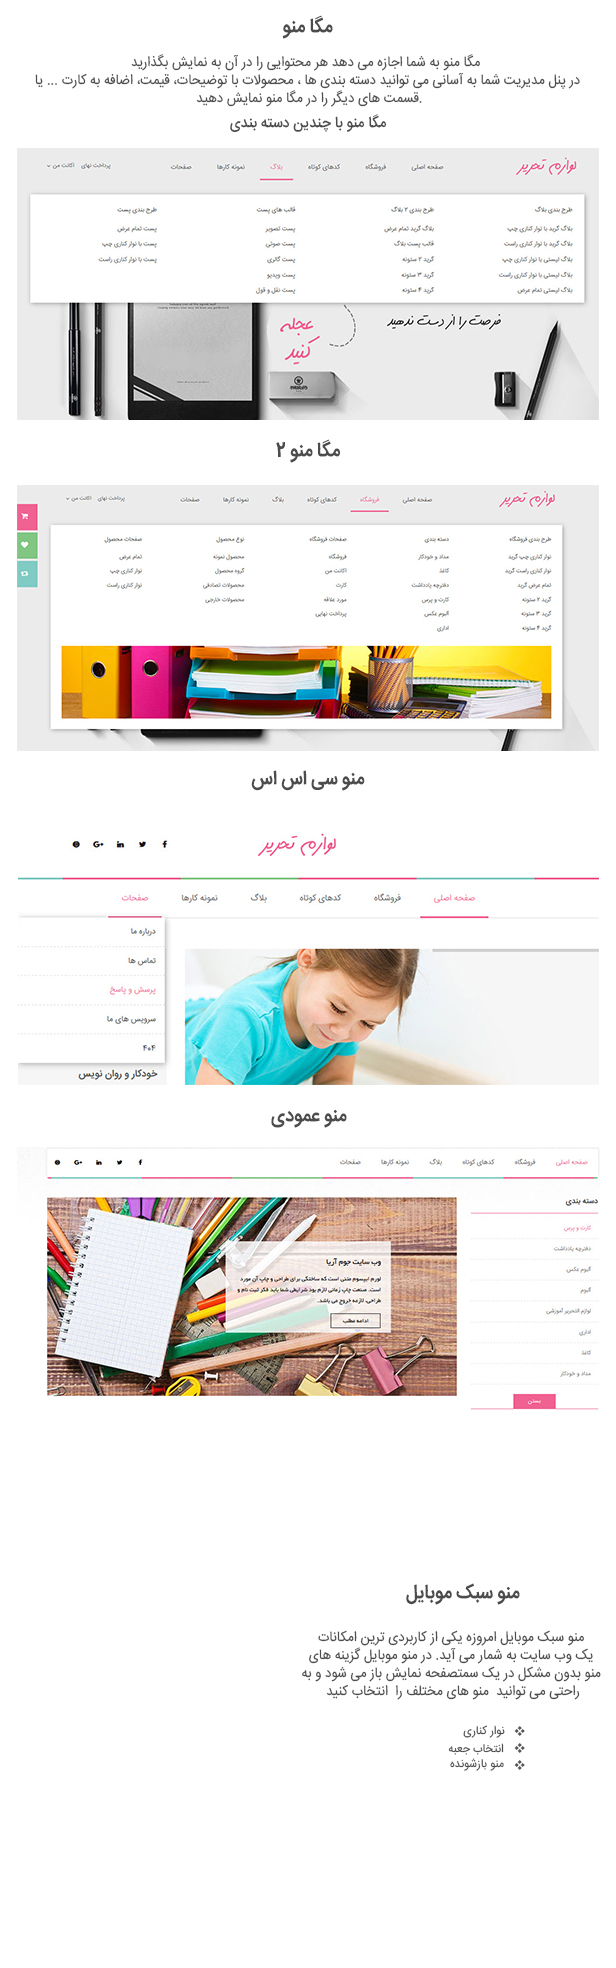 http://joomaria.ir/images/image-site/Stationery/Stationery-Template2.jpg